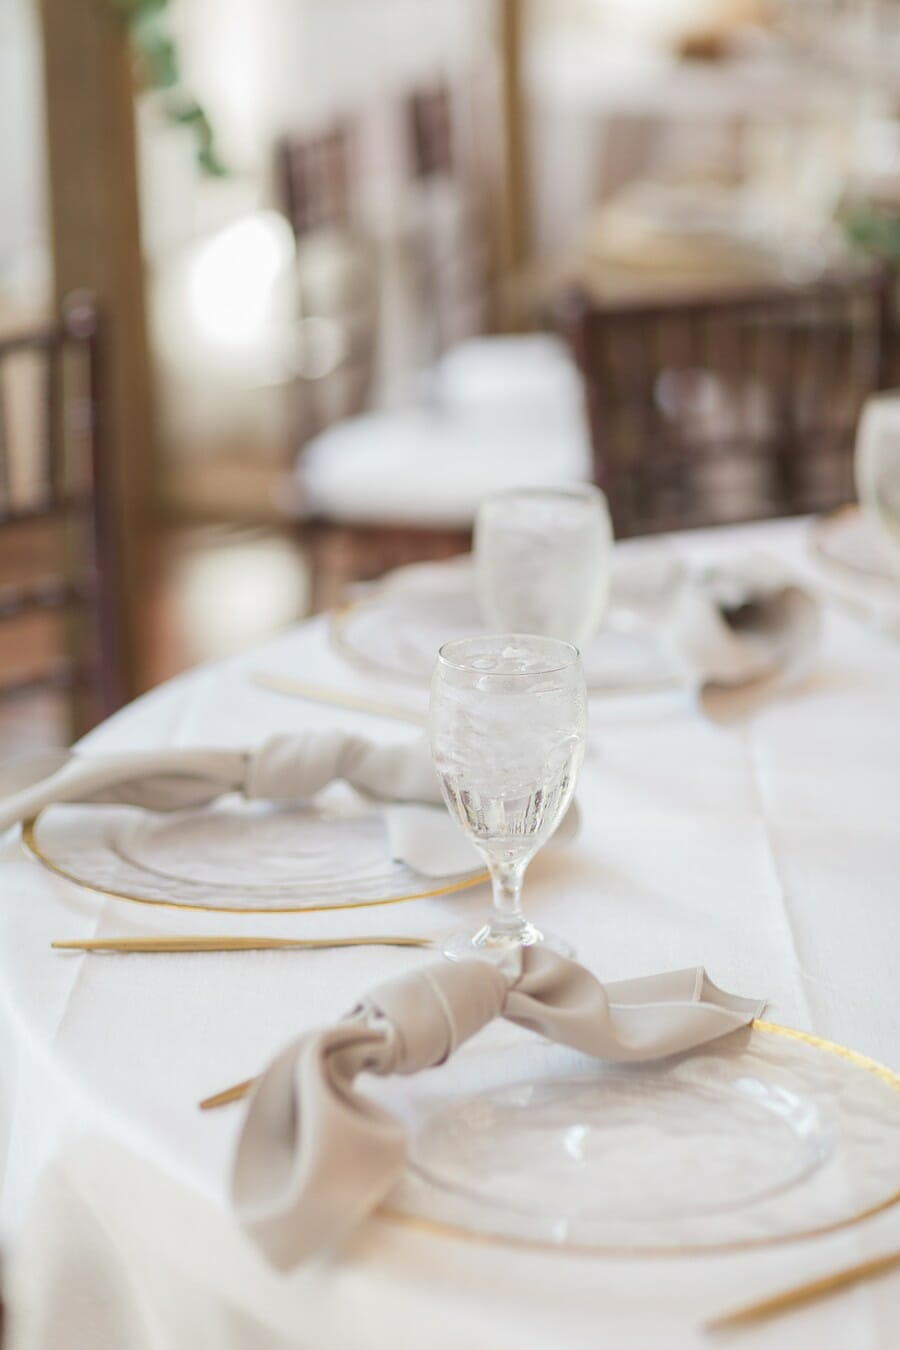 Gold Rimmed Chargers & Neutral Napkin